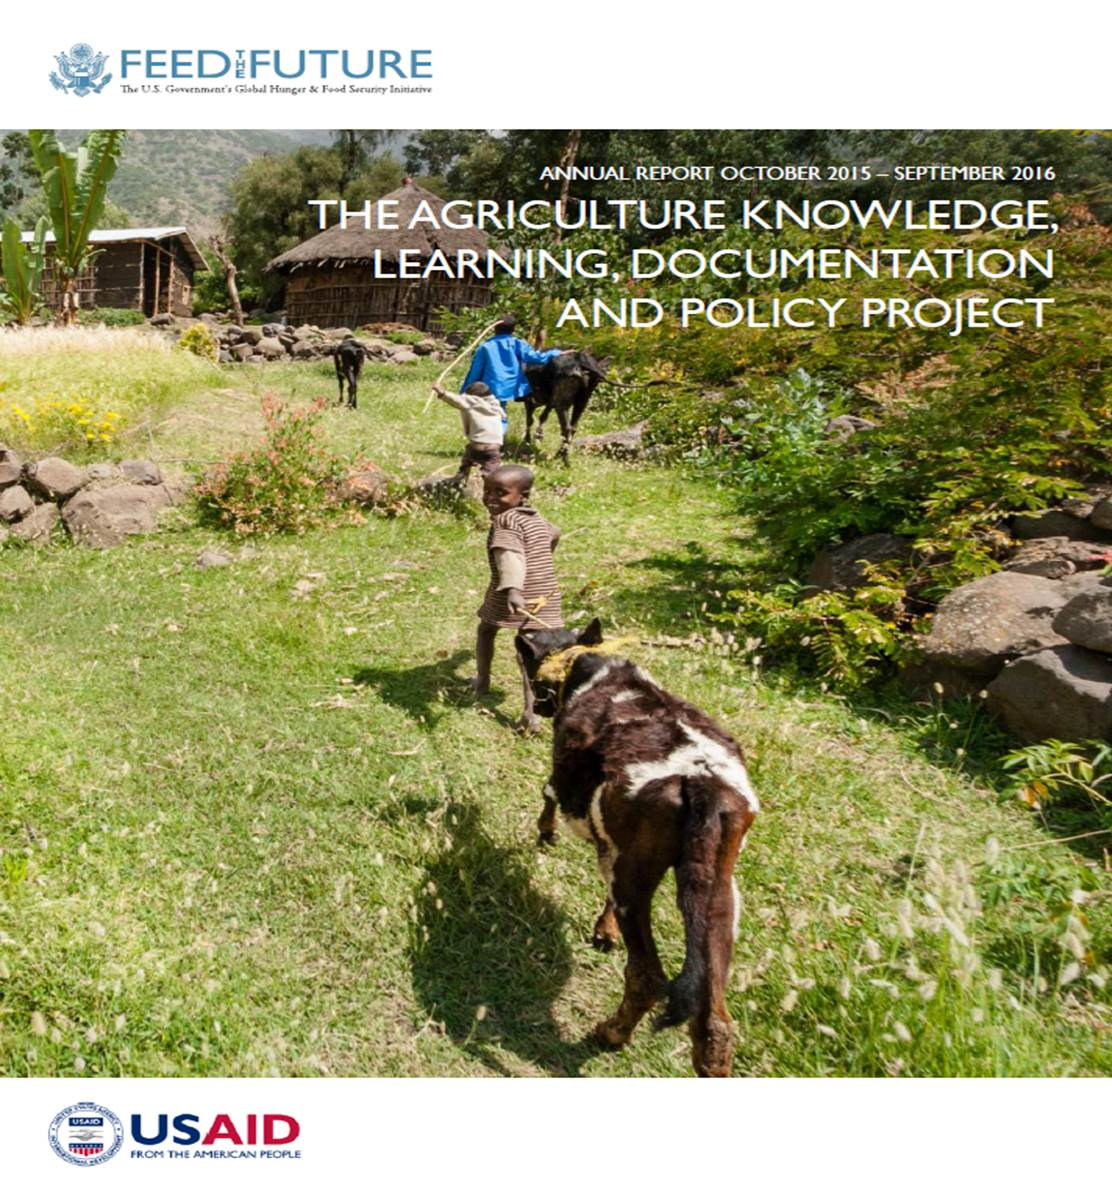 The Agriculture Knowledge, Learning, Documentation and Policy Project Annual Report 2016